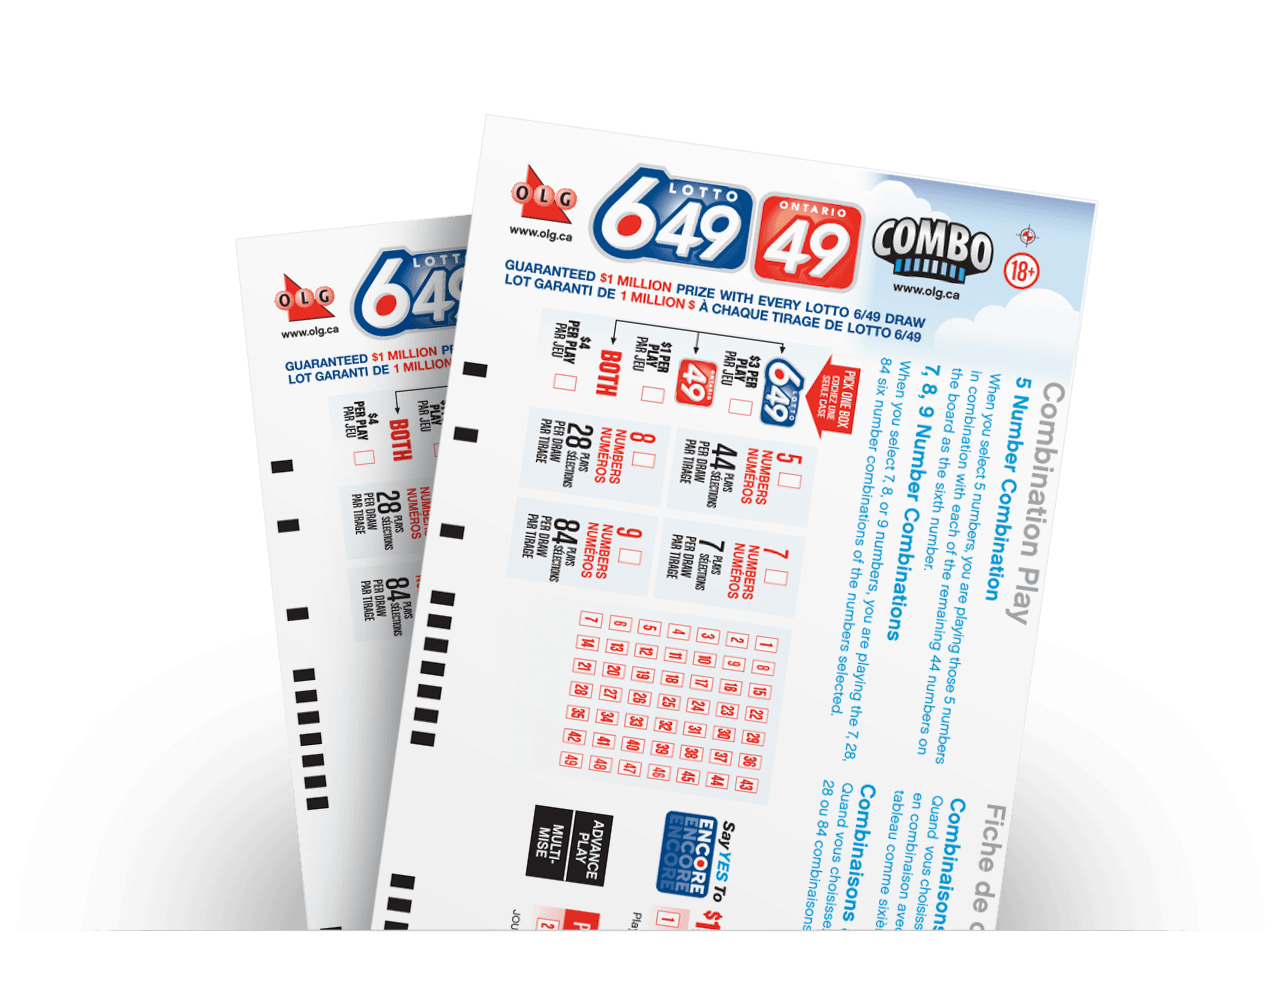 Close-up of LOTTO 649/ONTARIO 49 Advance Play numbers selected